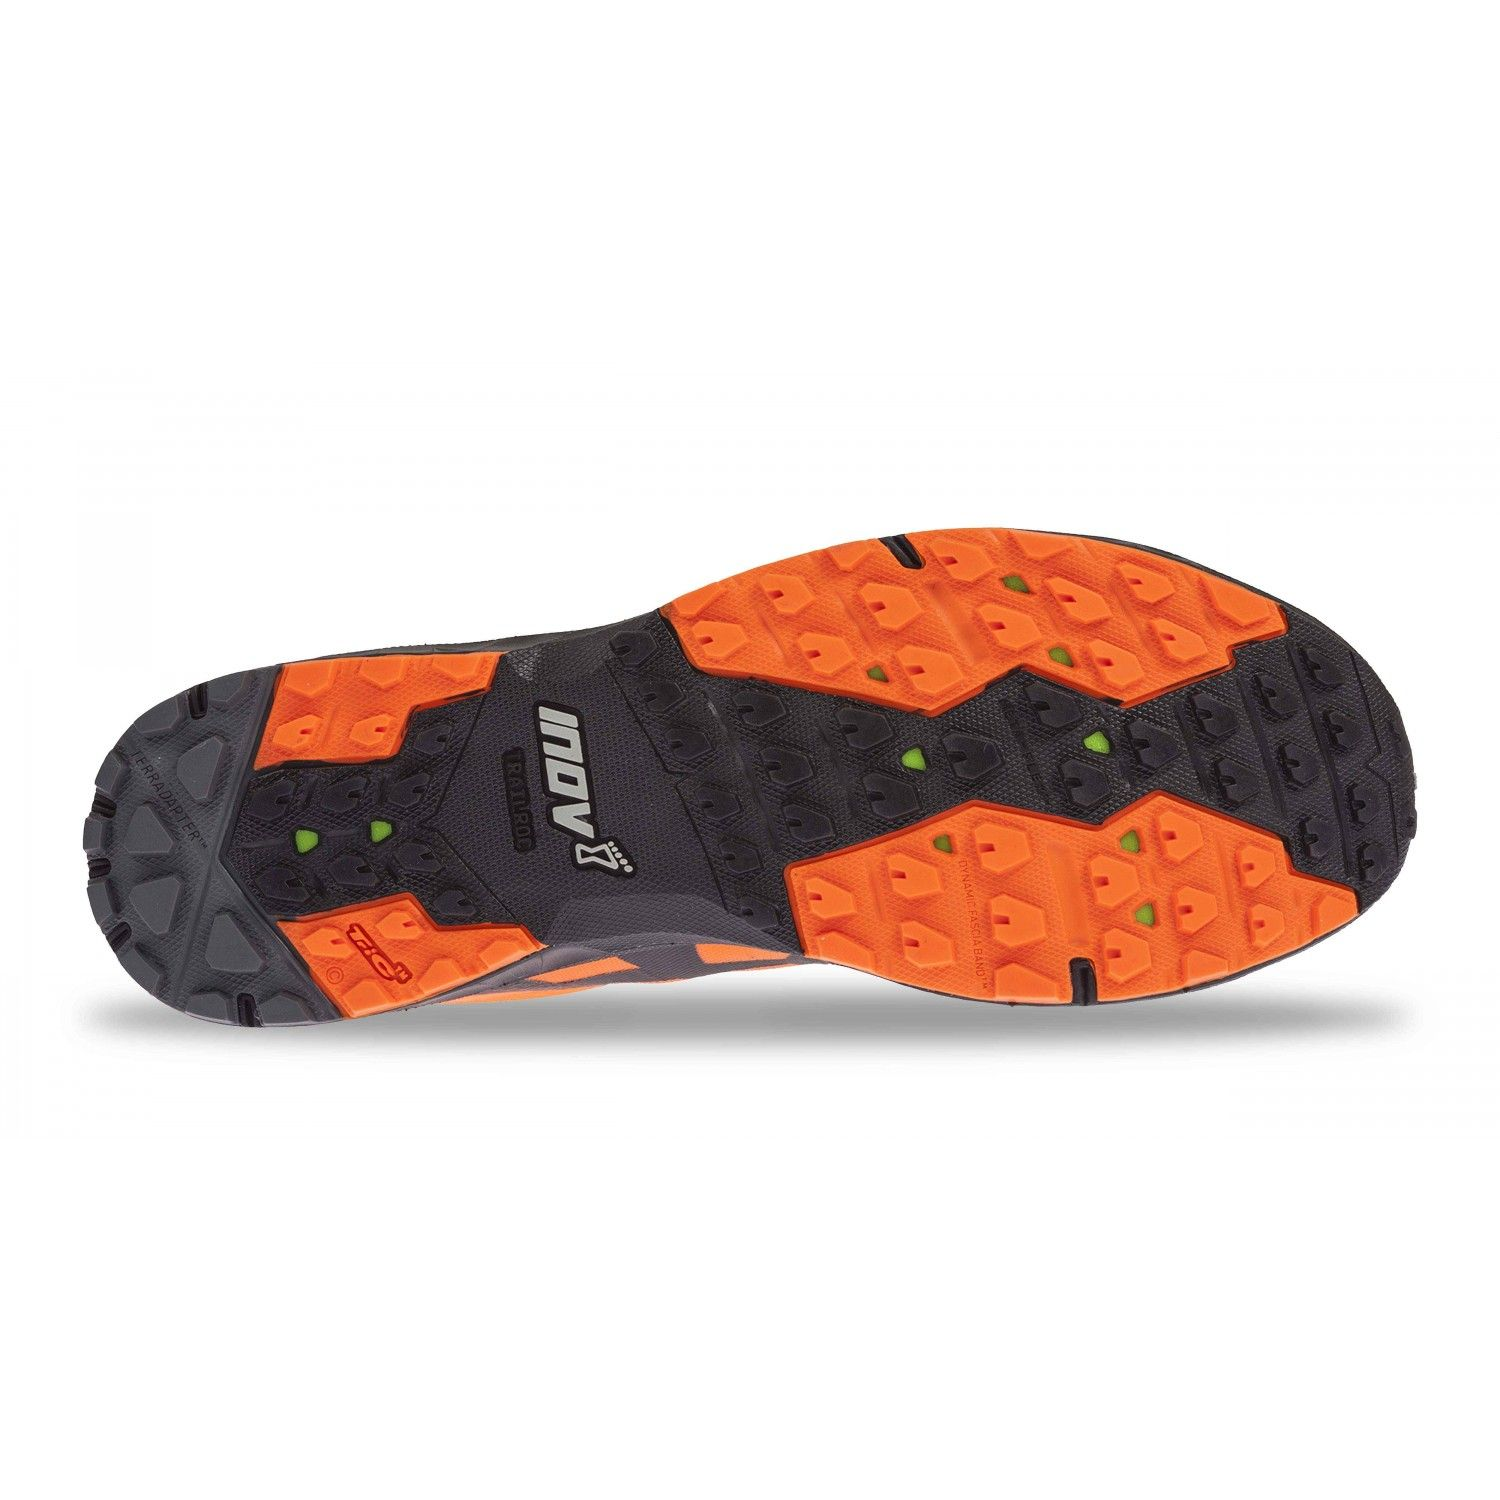 inov-8-trailroc-270-orange (1)